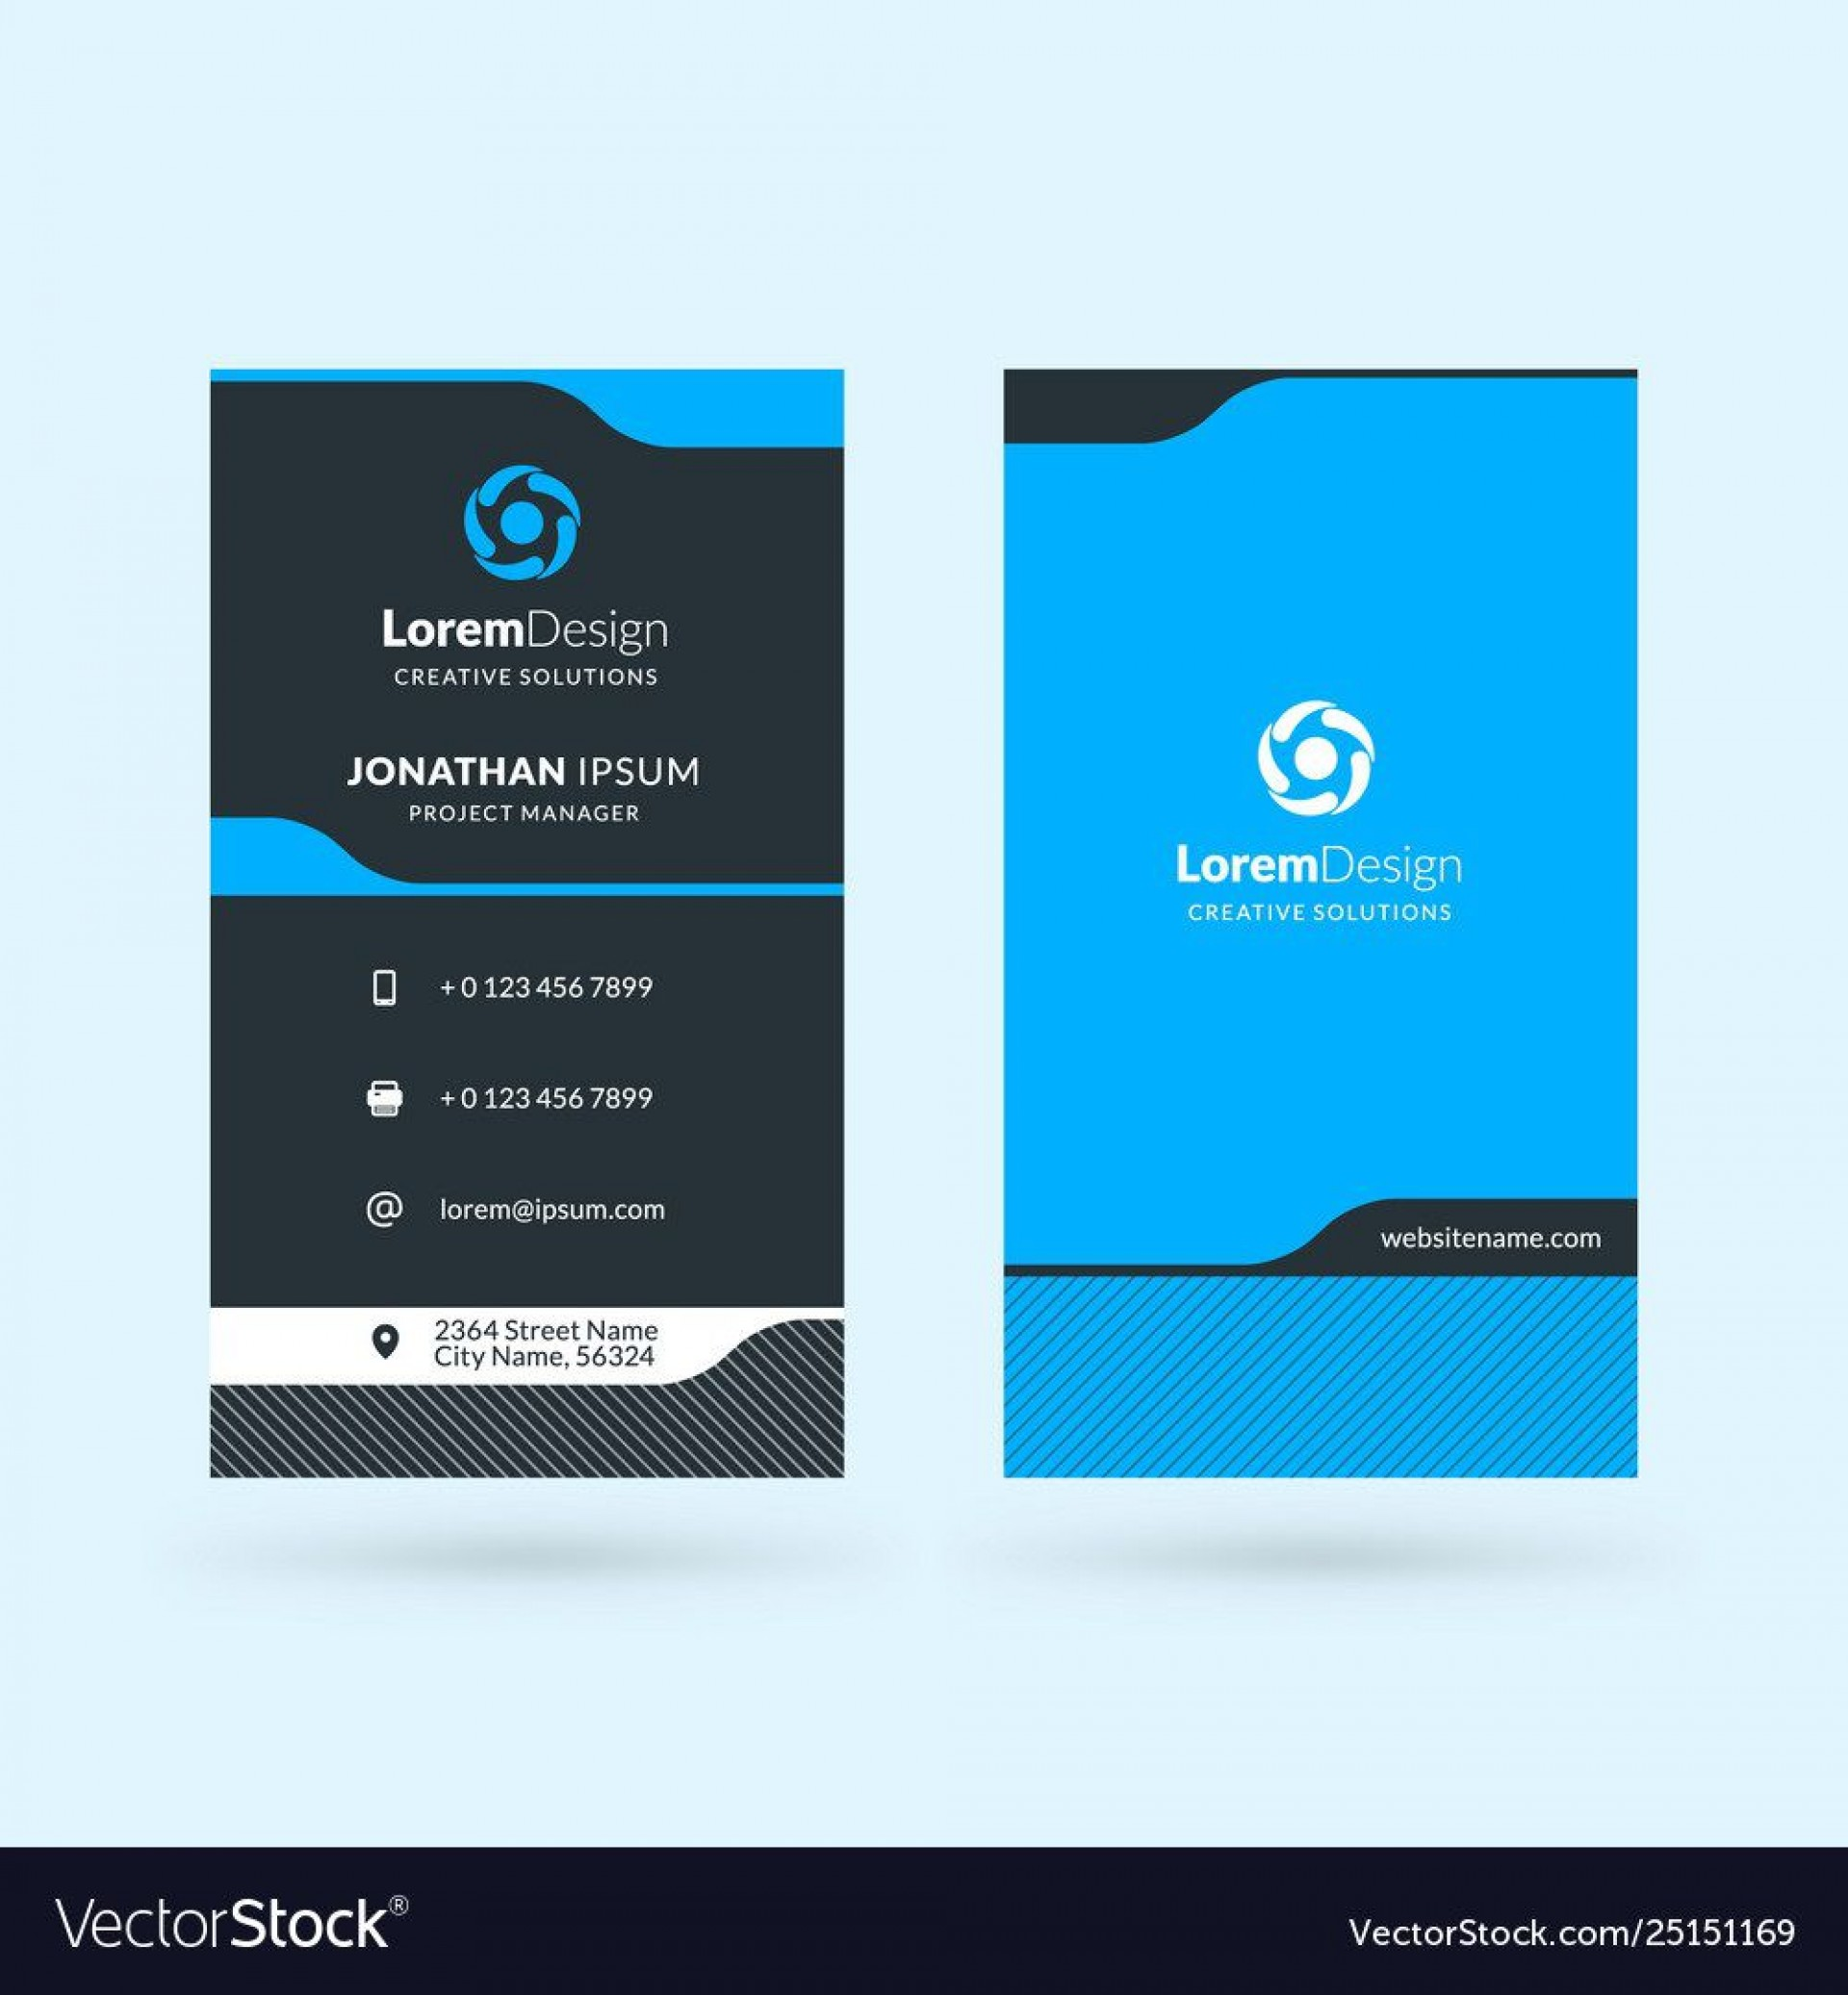 008 Stupendou Double Sided Busines Card Template Image  Templates Word Free Two Microsoft1920